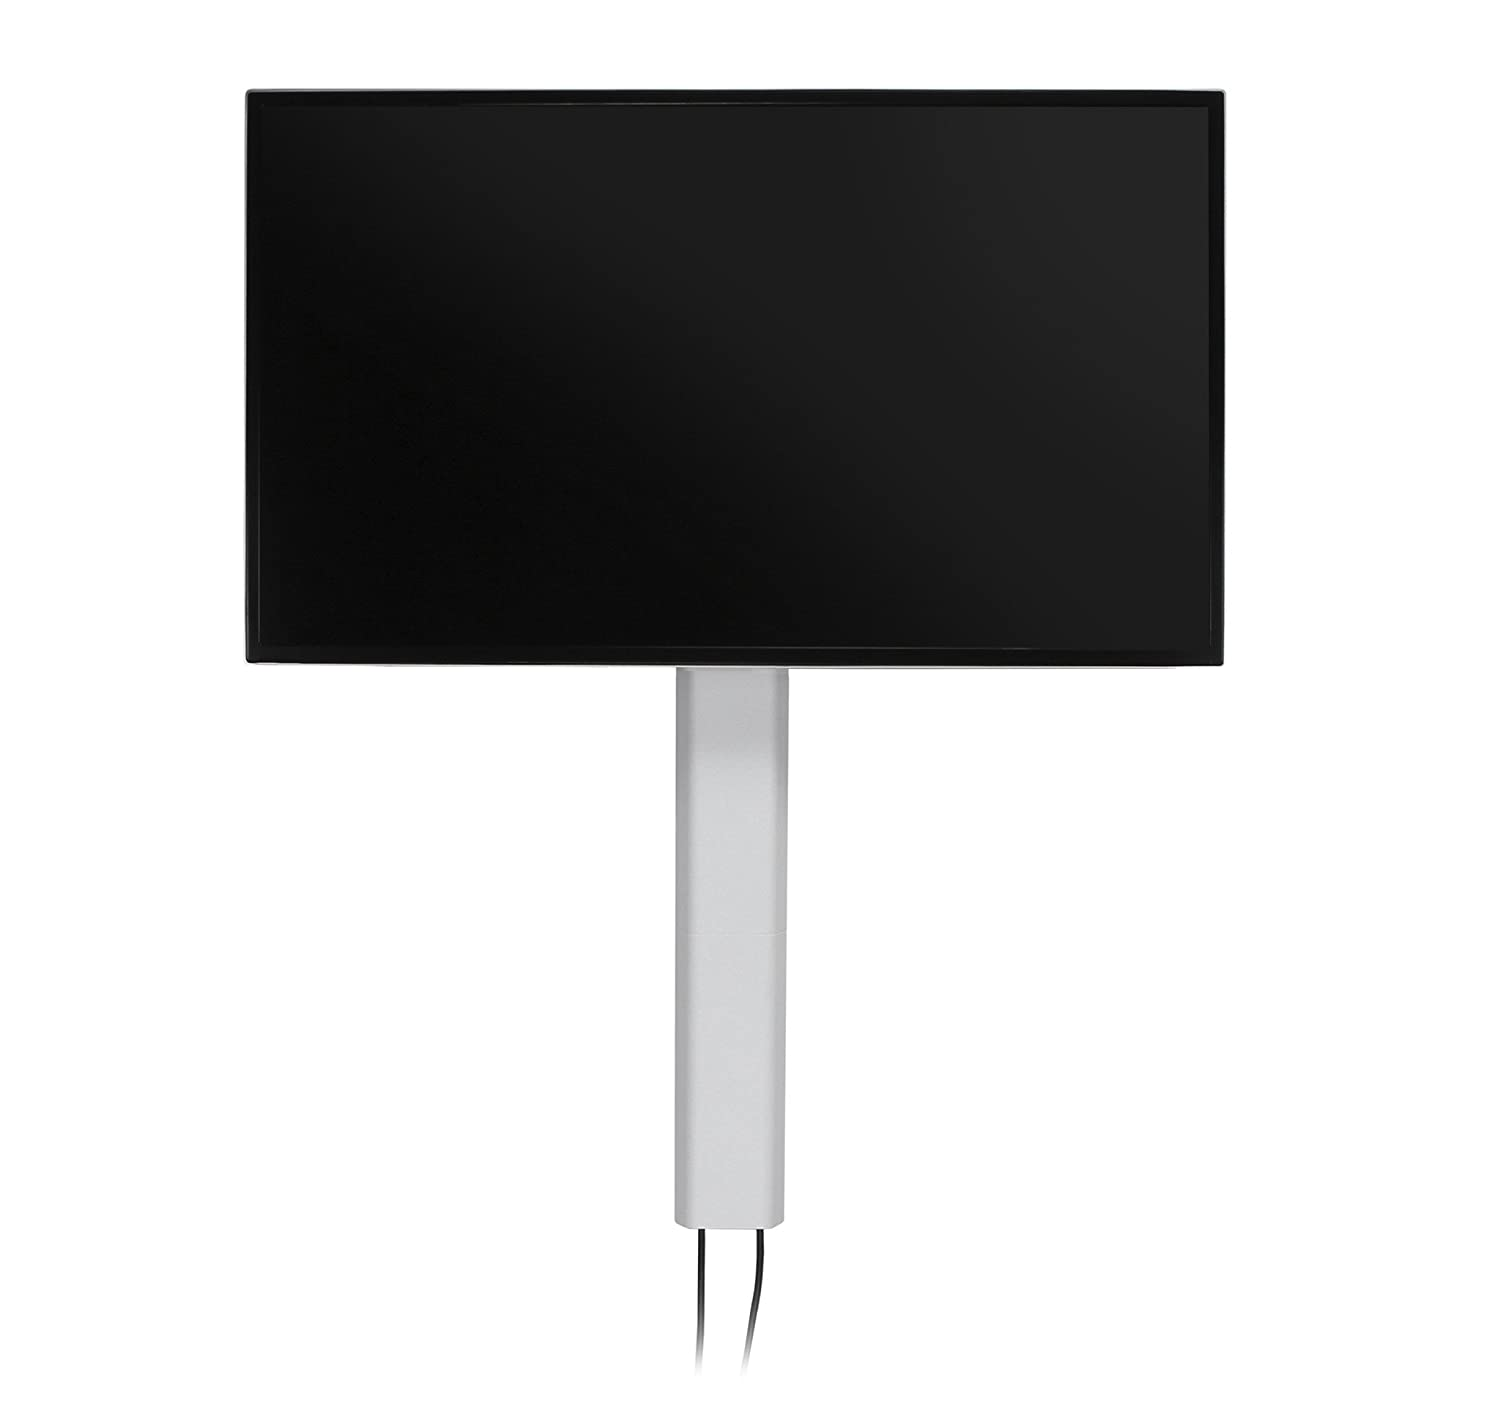 Omnimount Ocm On Wall Cable Management Covers Paintable Hide Flat Screen Tv Cables An Easy Inwall Solution By Legrand Design To Conceal Up 6 Set Of Three 325 X 18 Inches